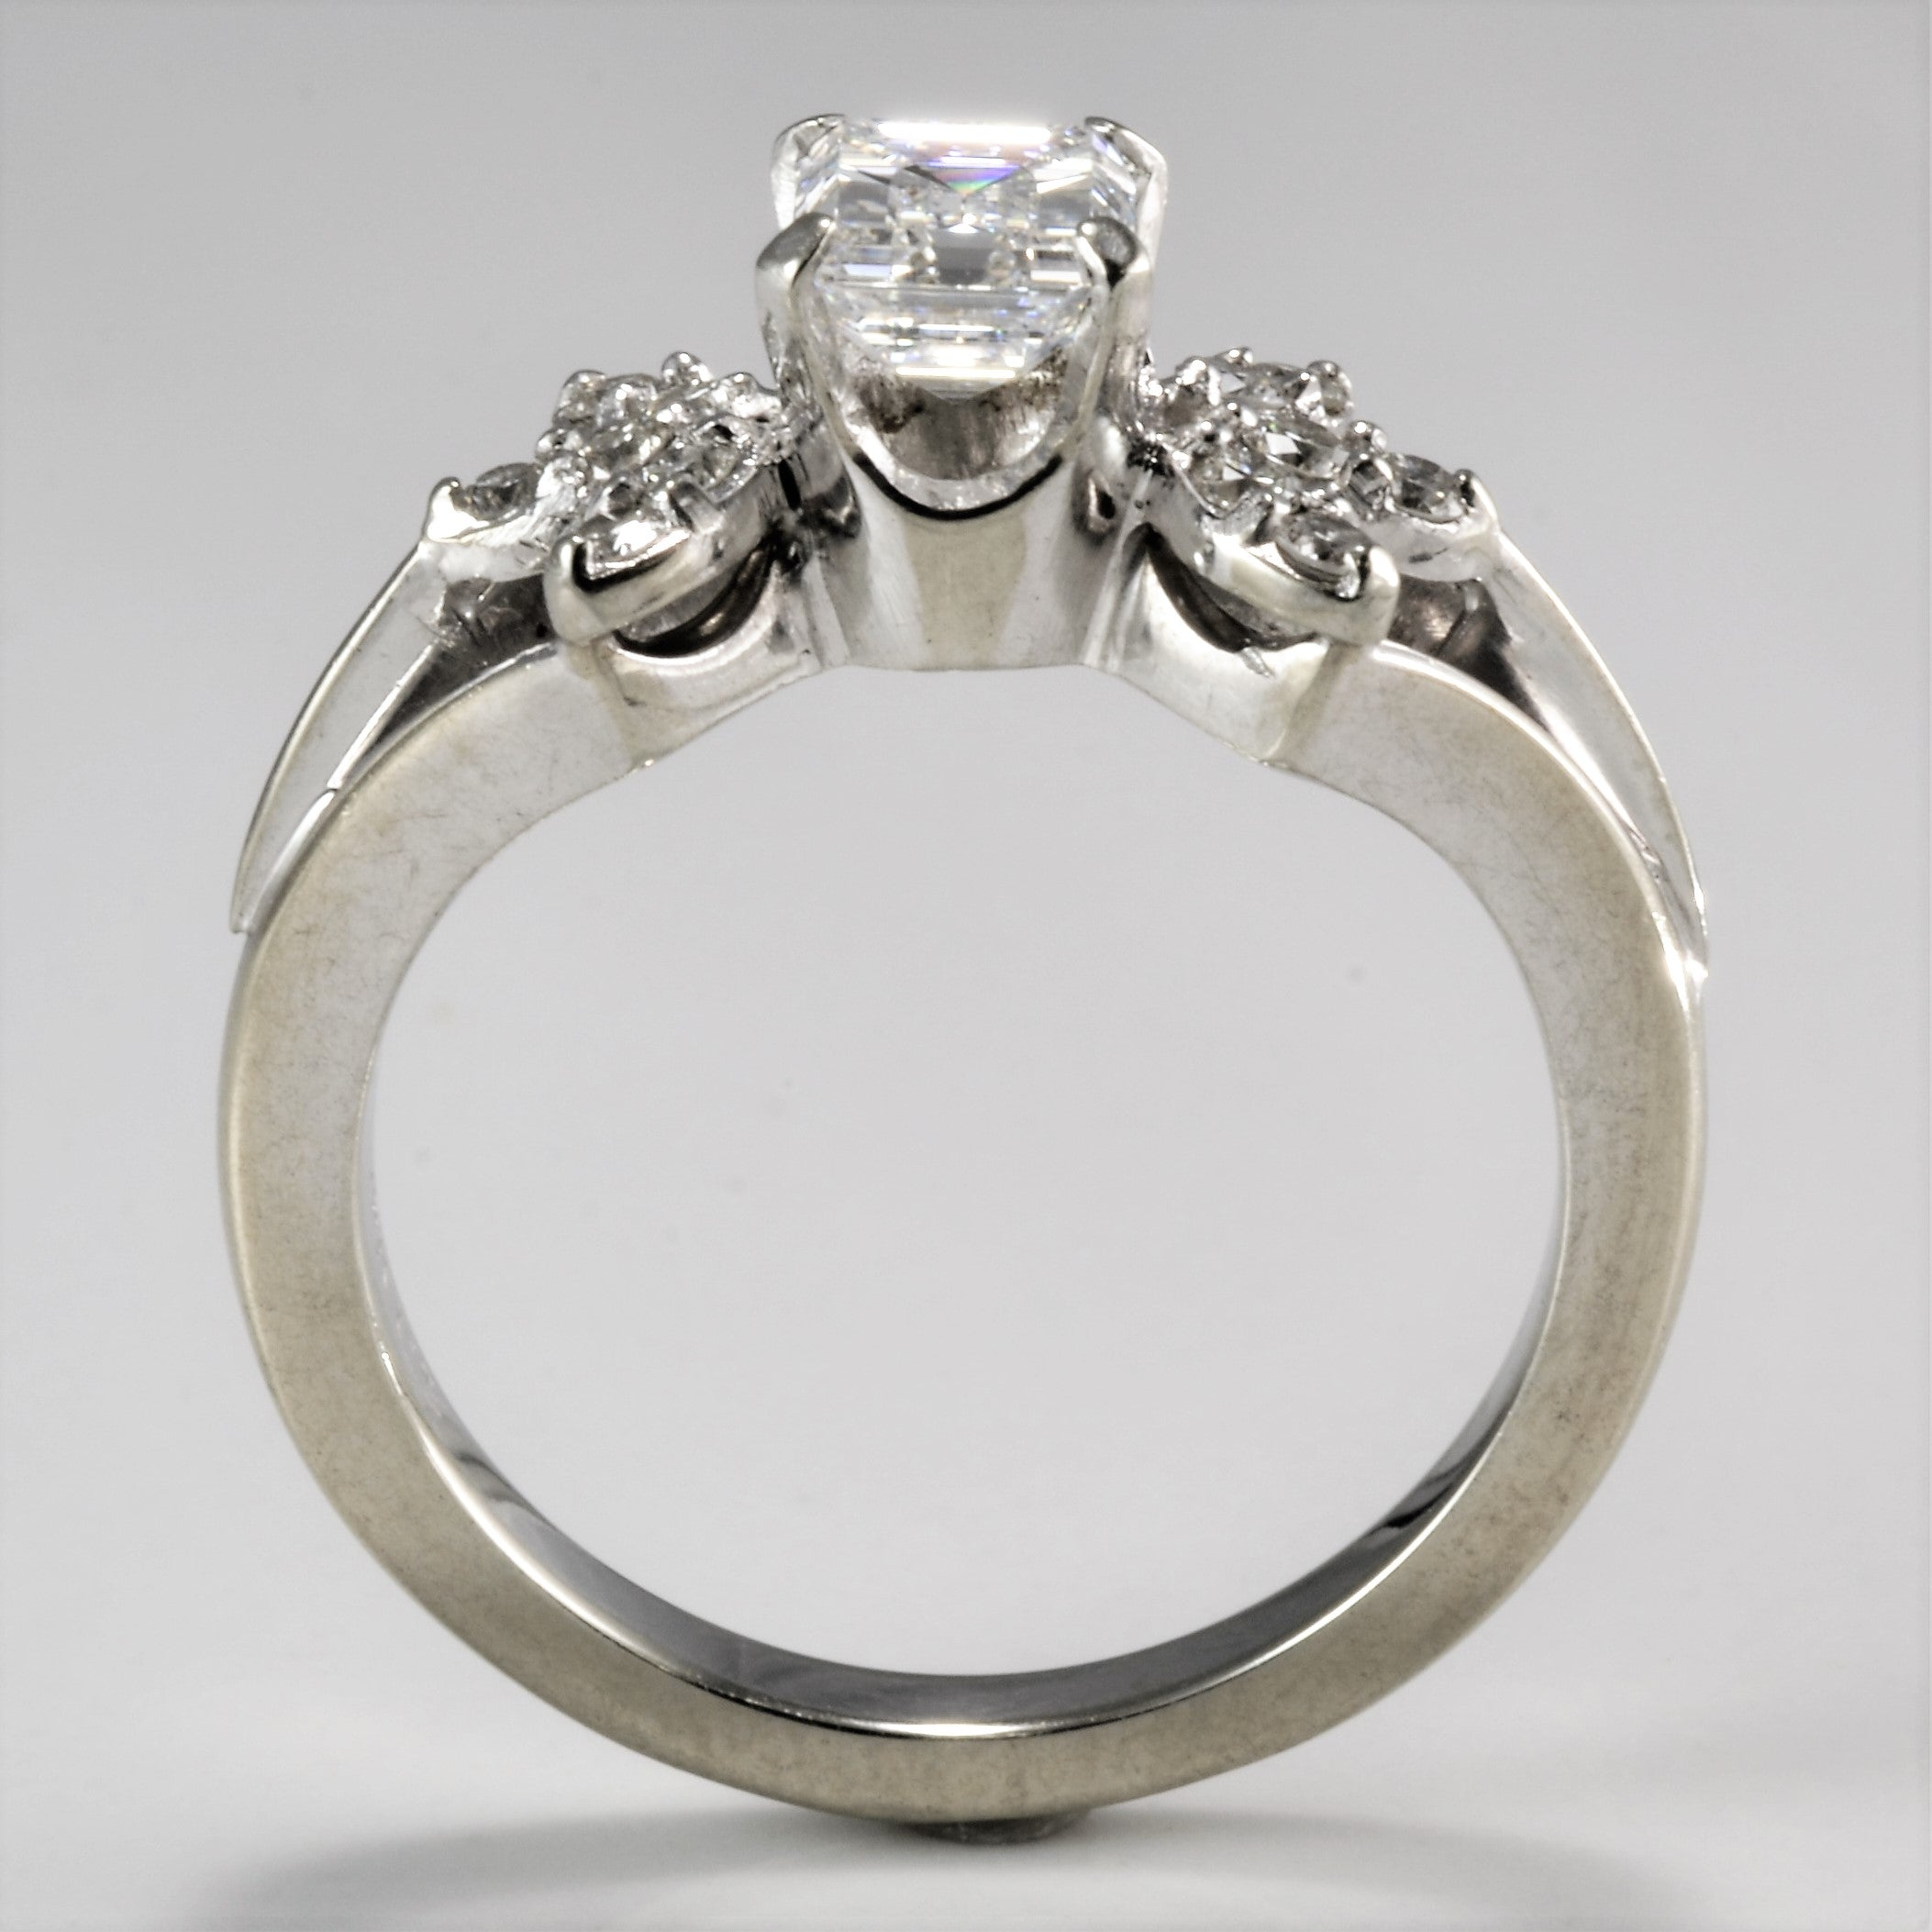 Floral Inspired Emerald Cut Engagement Ring | 0.82 ctw, SZ 6.5 |